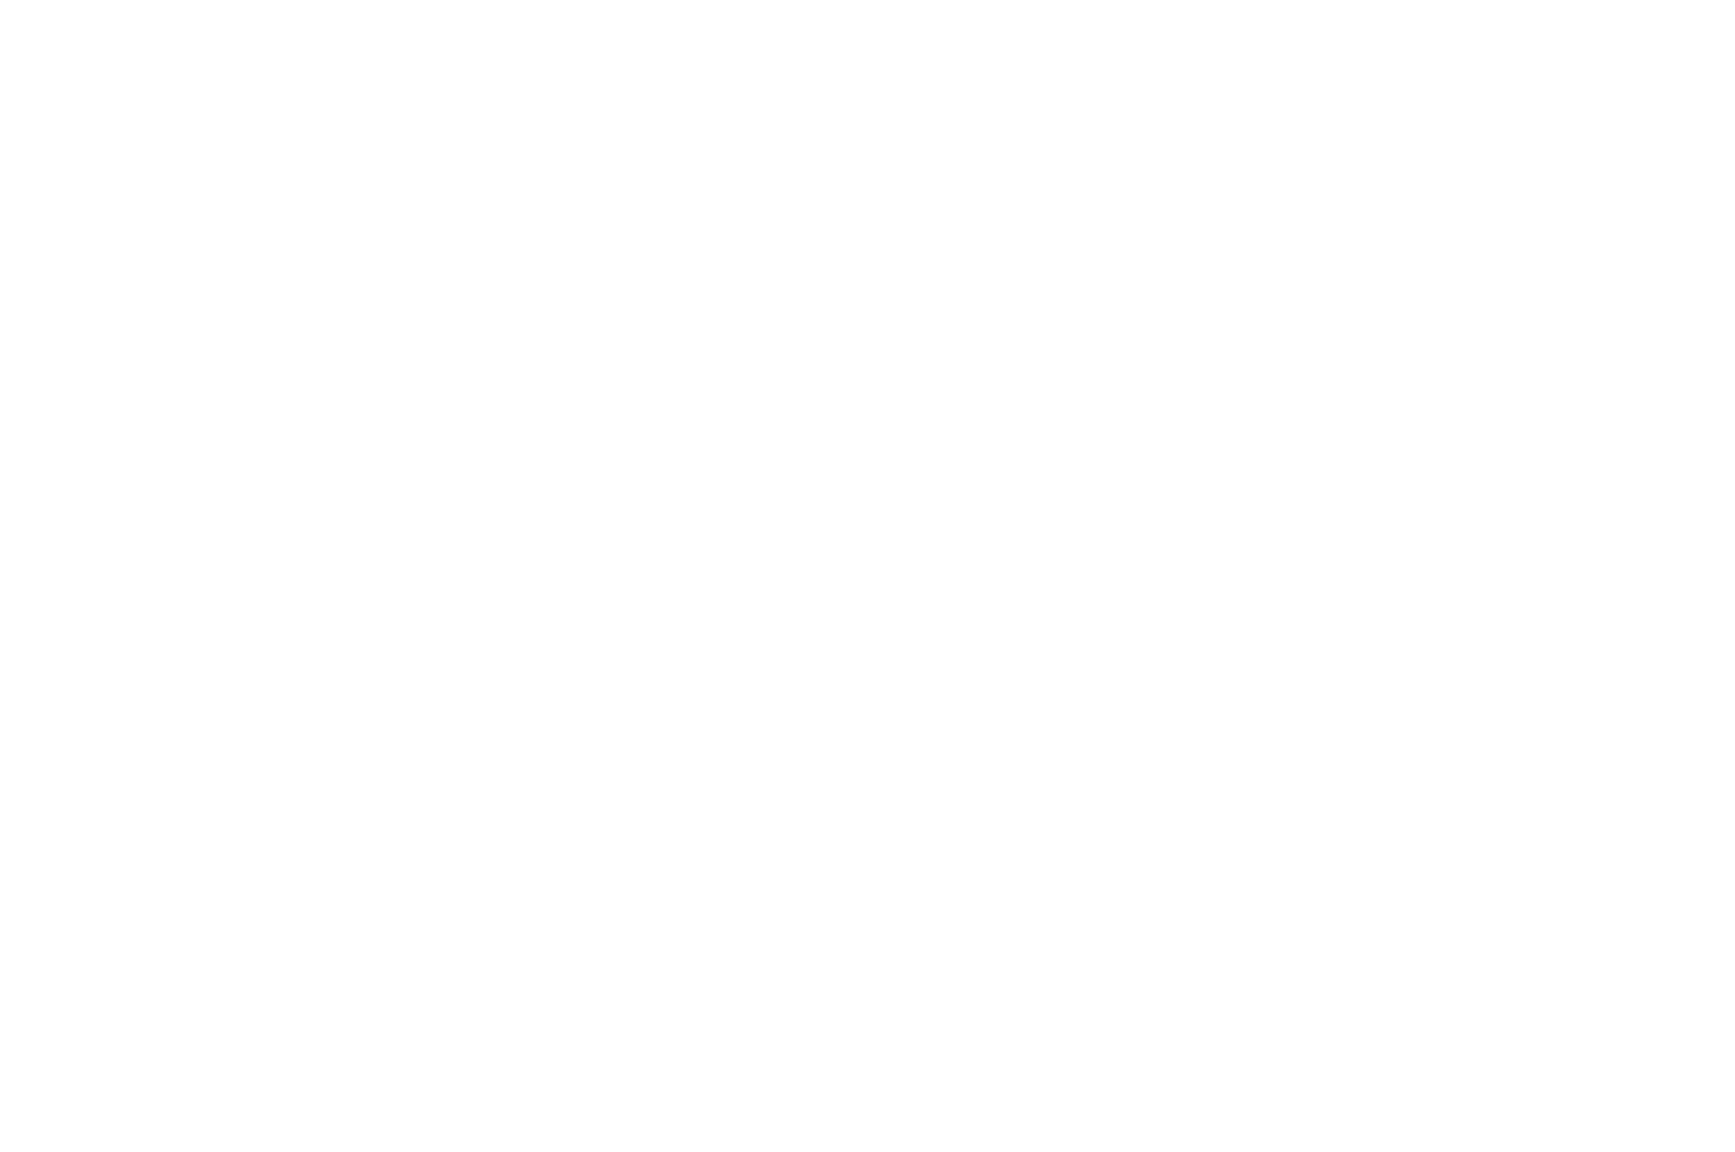 OFFICIAL SELECTION - Transylvania Cinema Awards - 2017.png